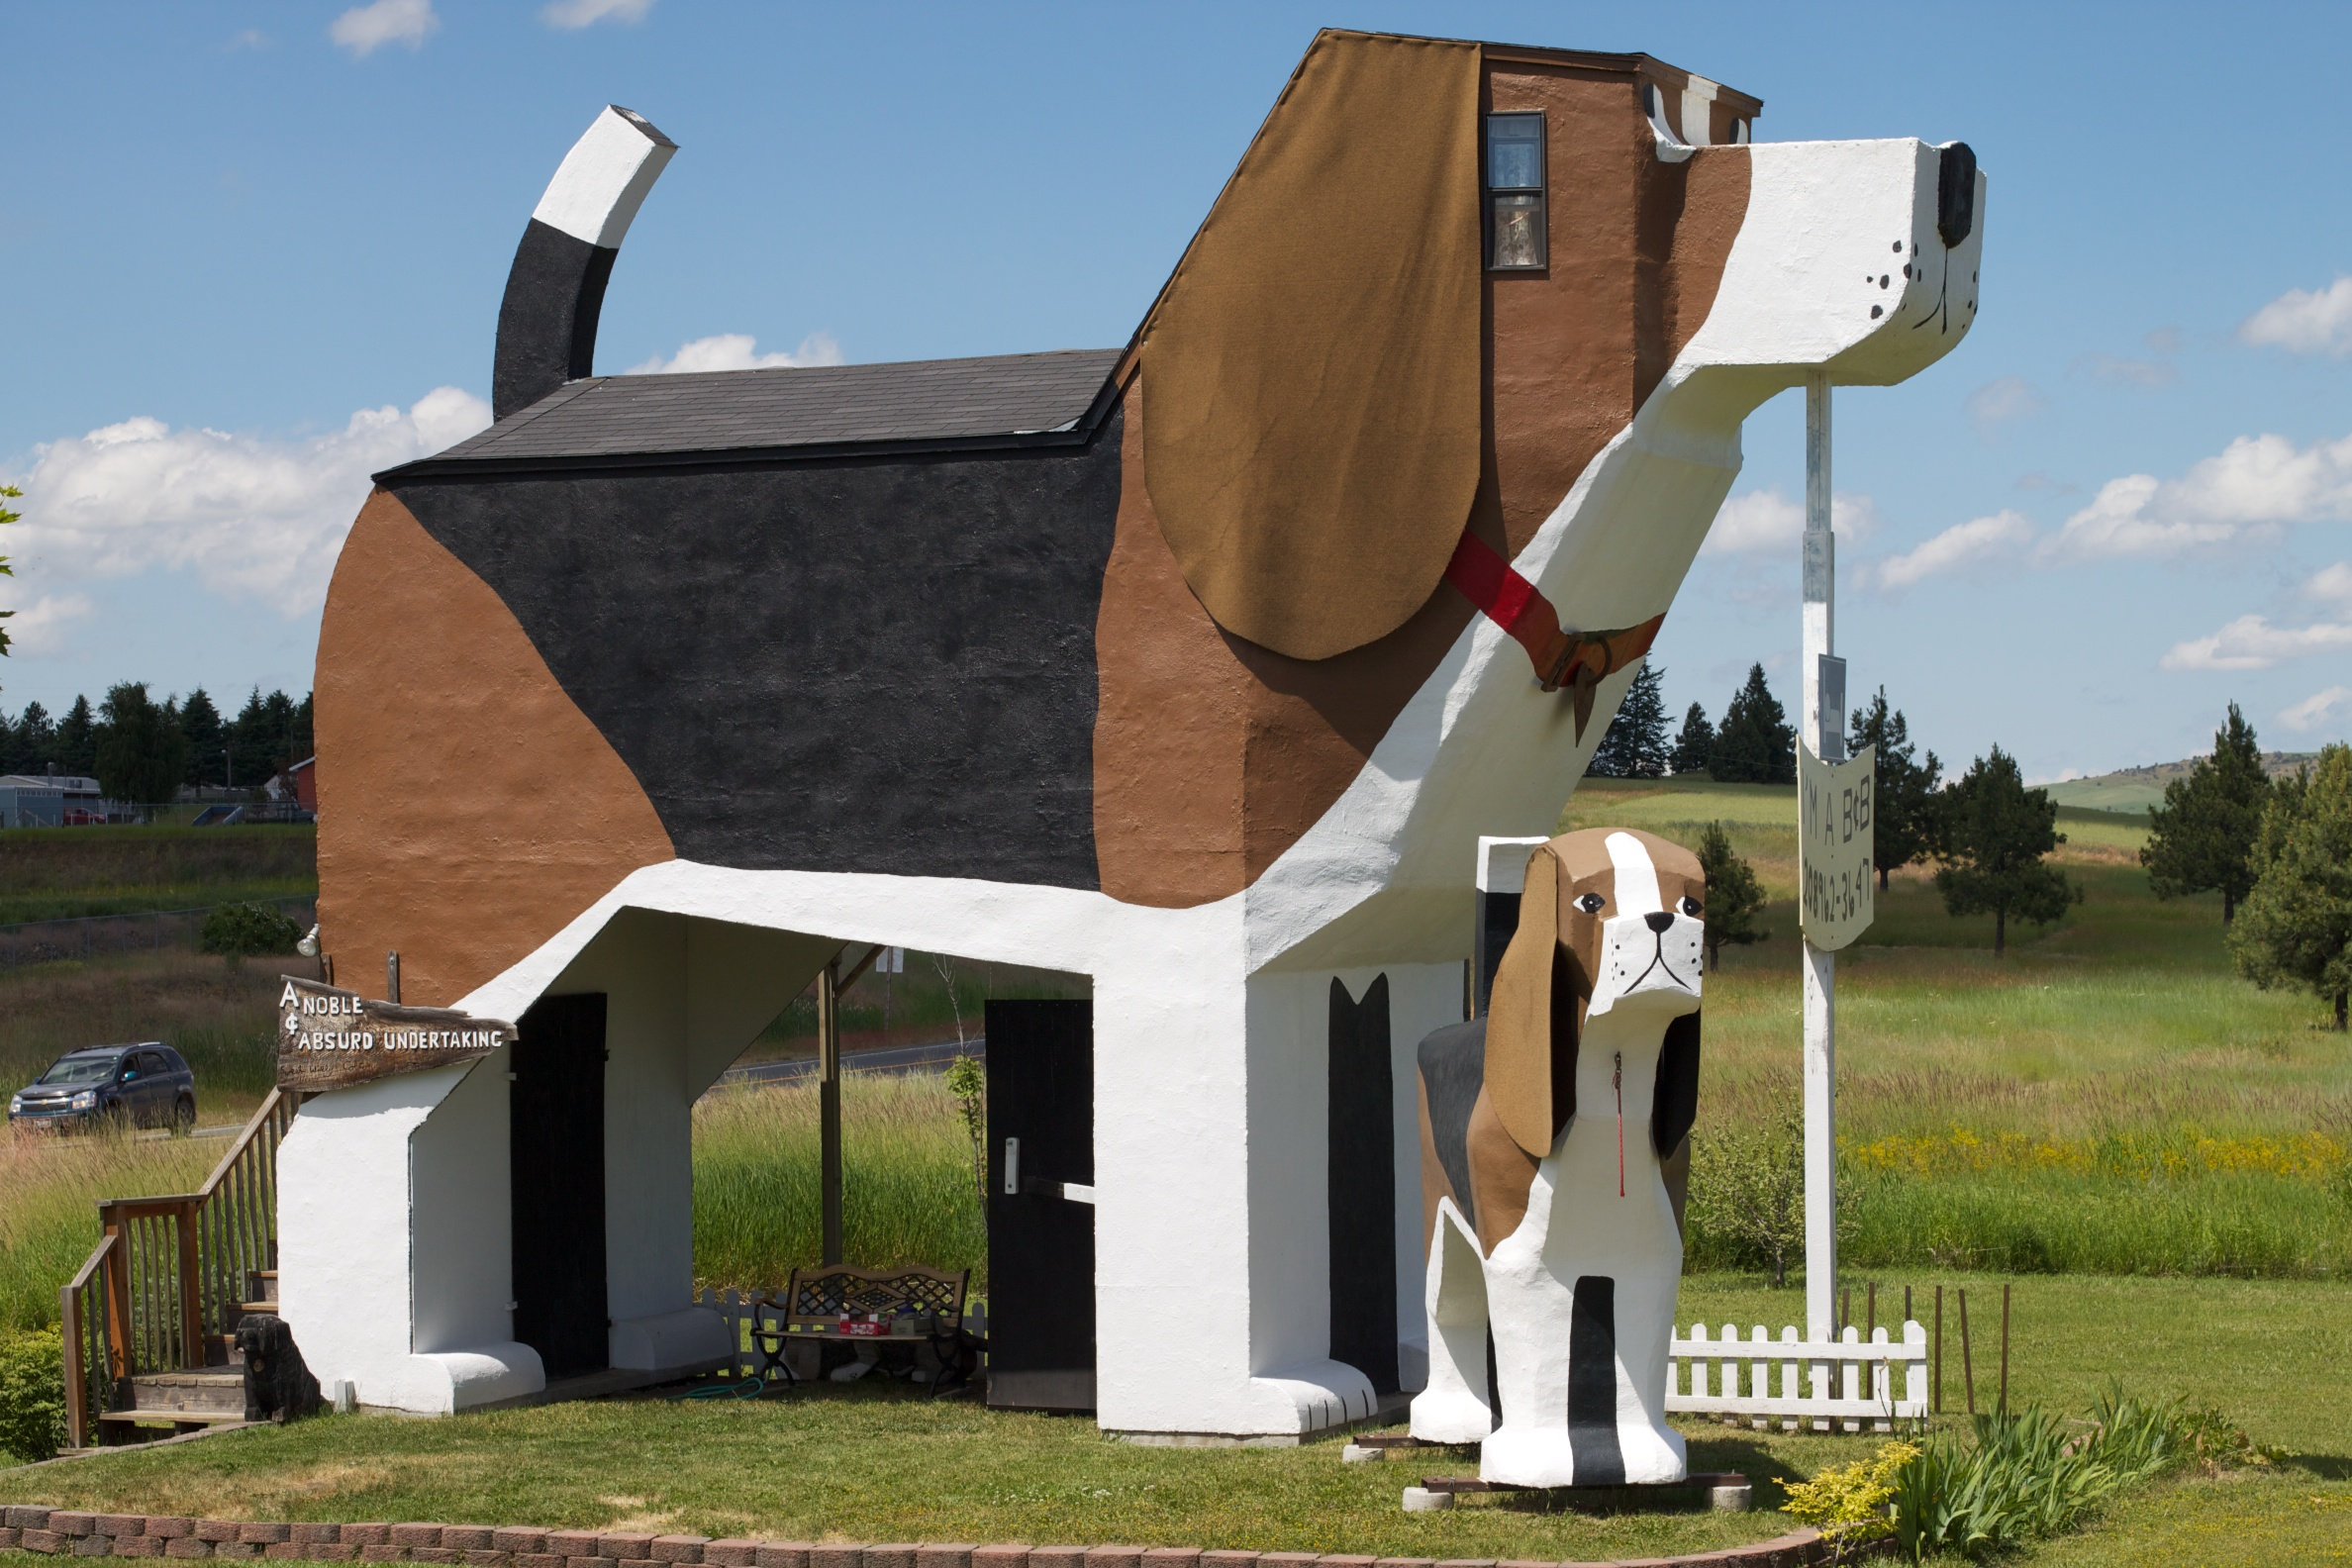 Dog Bark Park, Cottonwood, Idaho http://www.dogbarkparkinn.com/